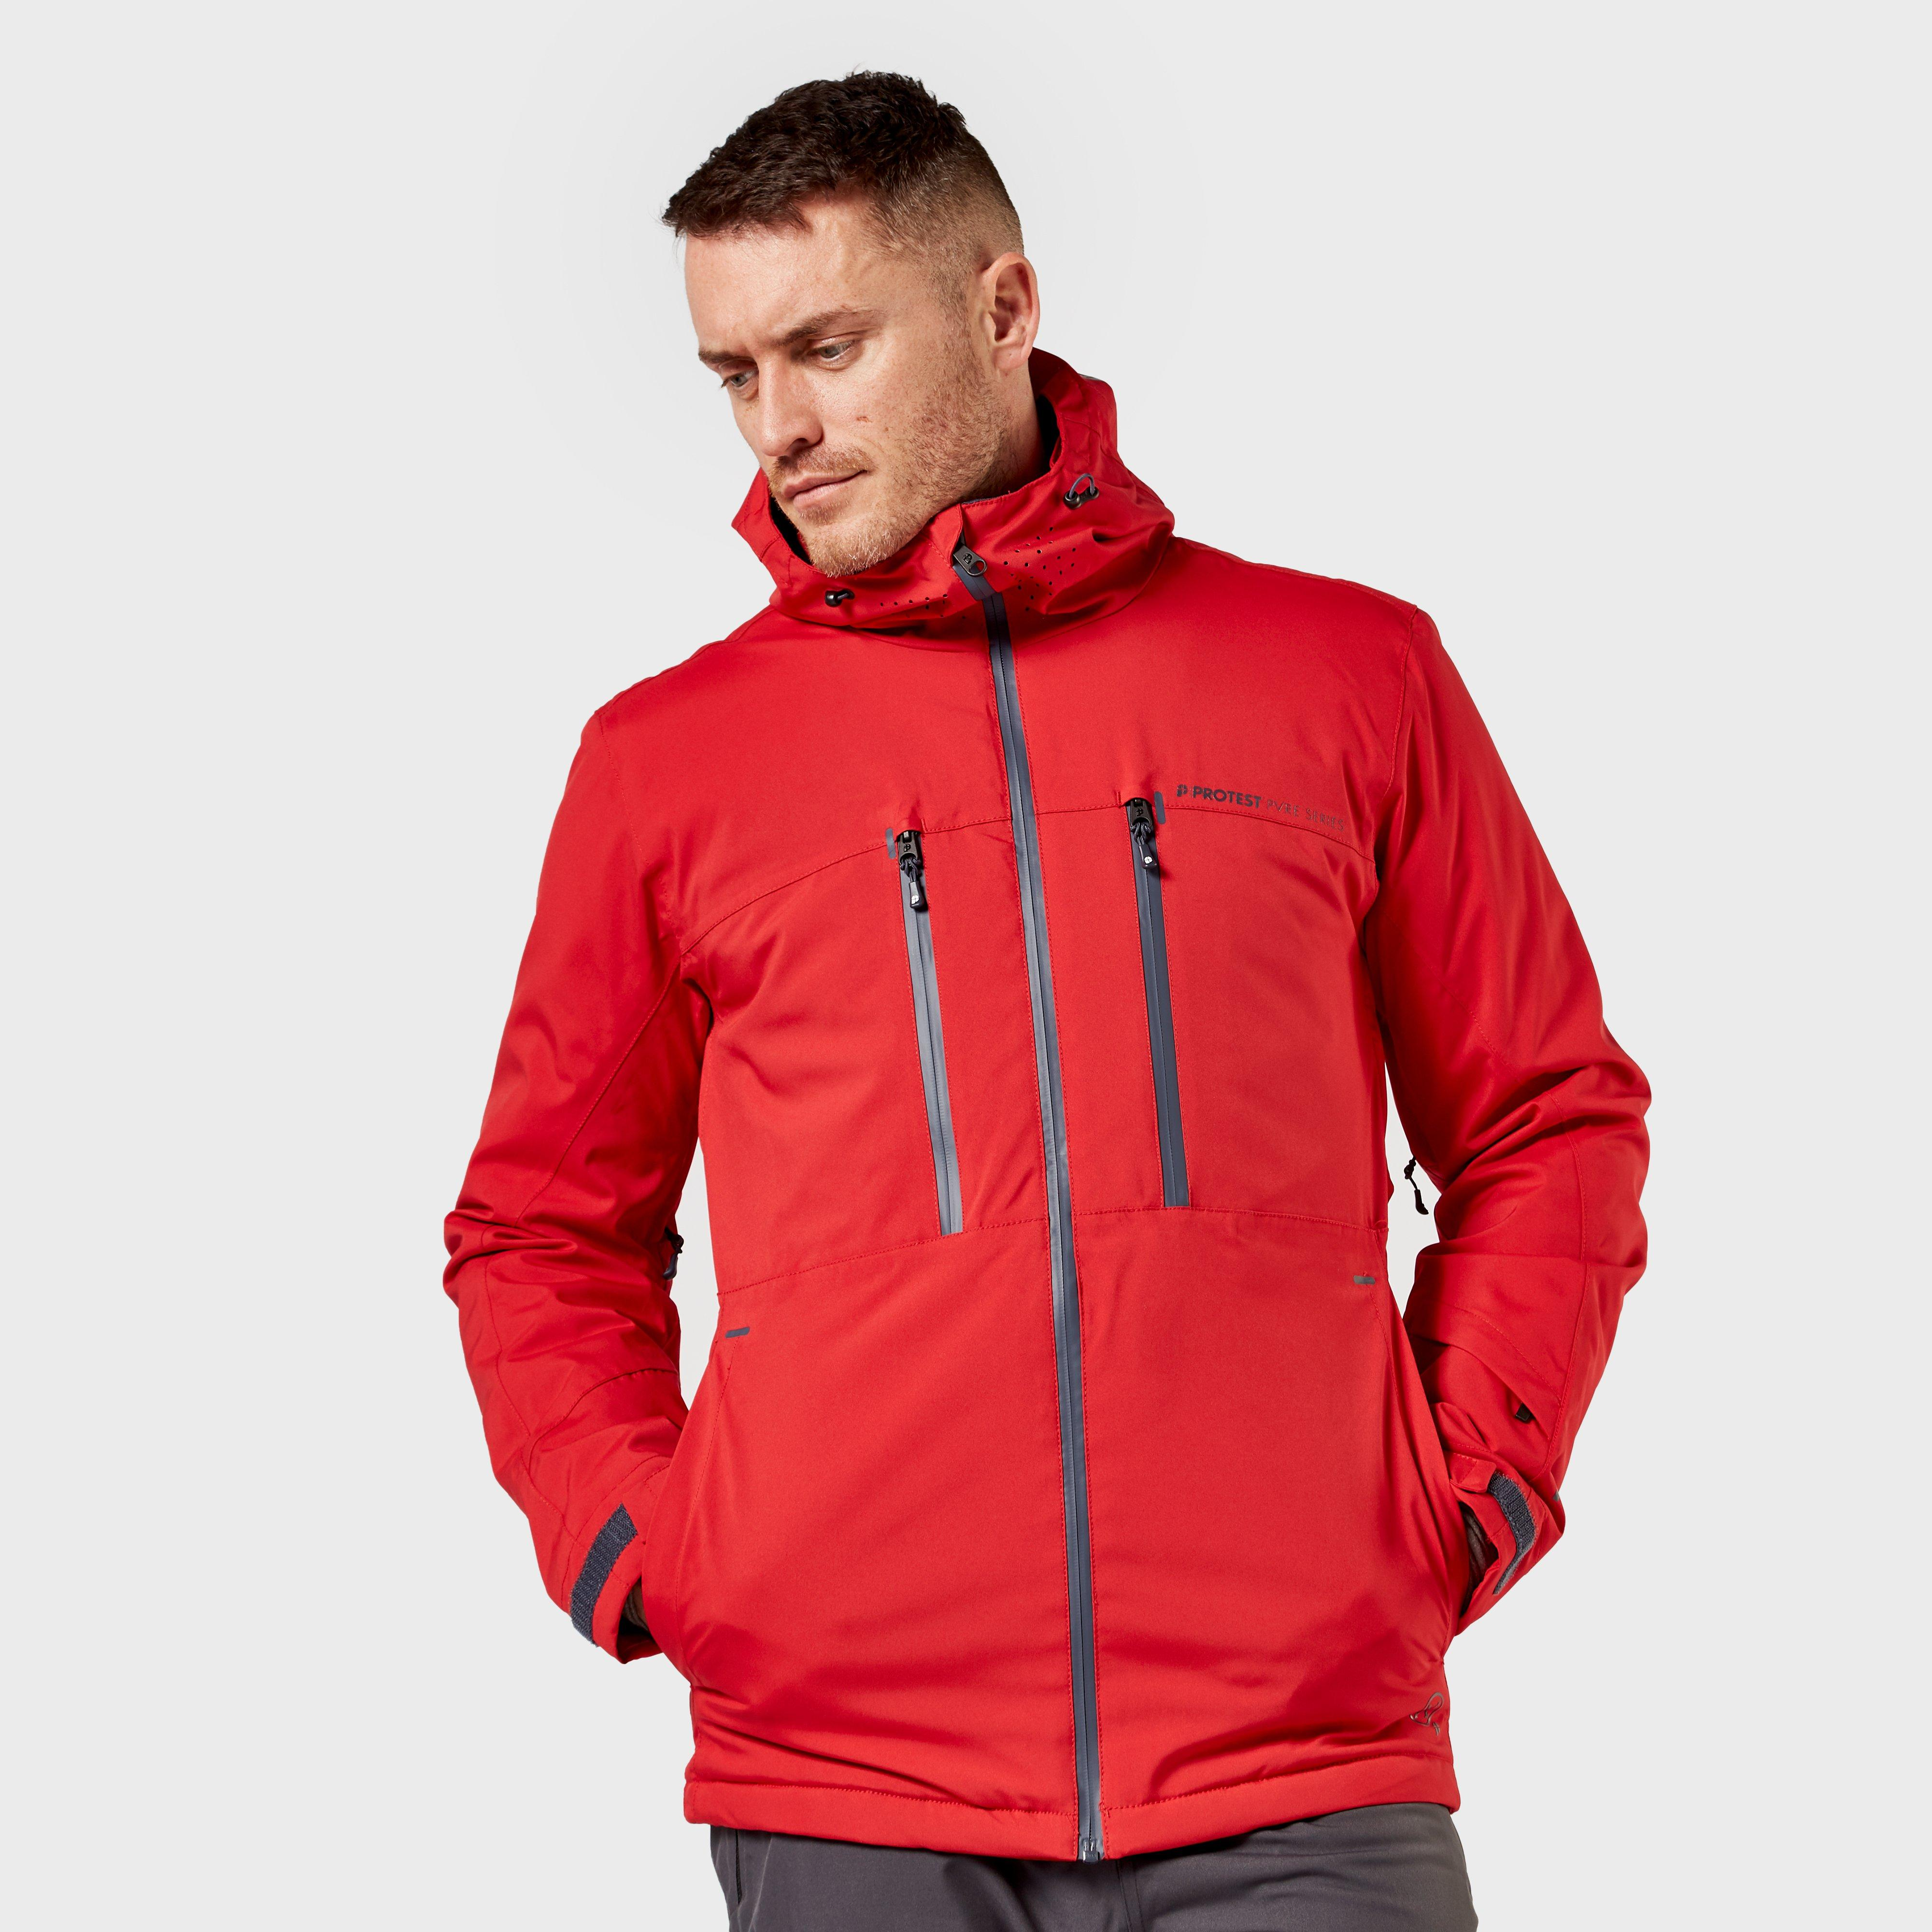 Protest Protest Mens Calvin 19 Ski Jacket - Red, Red